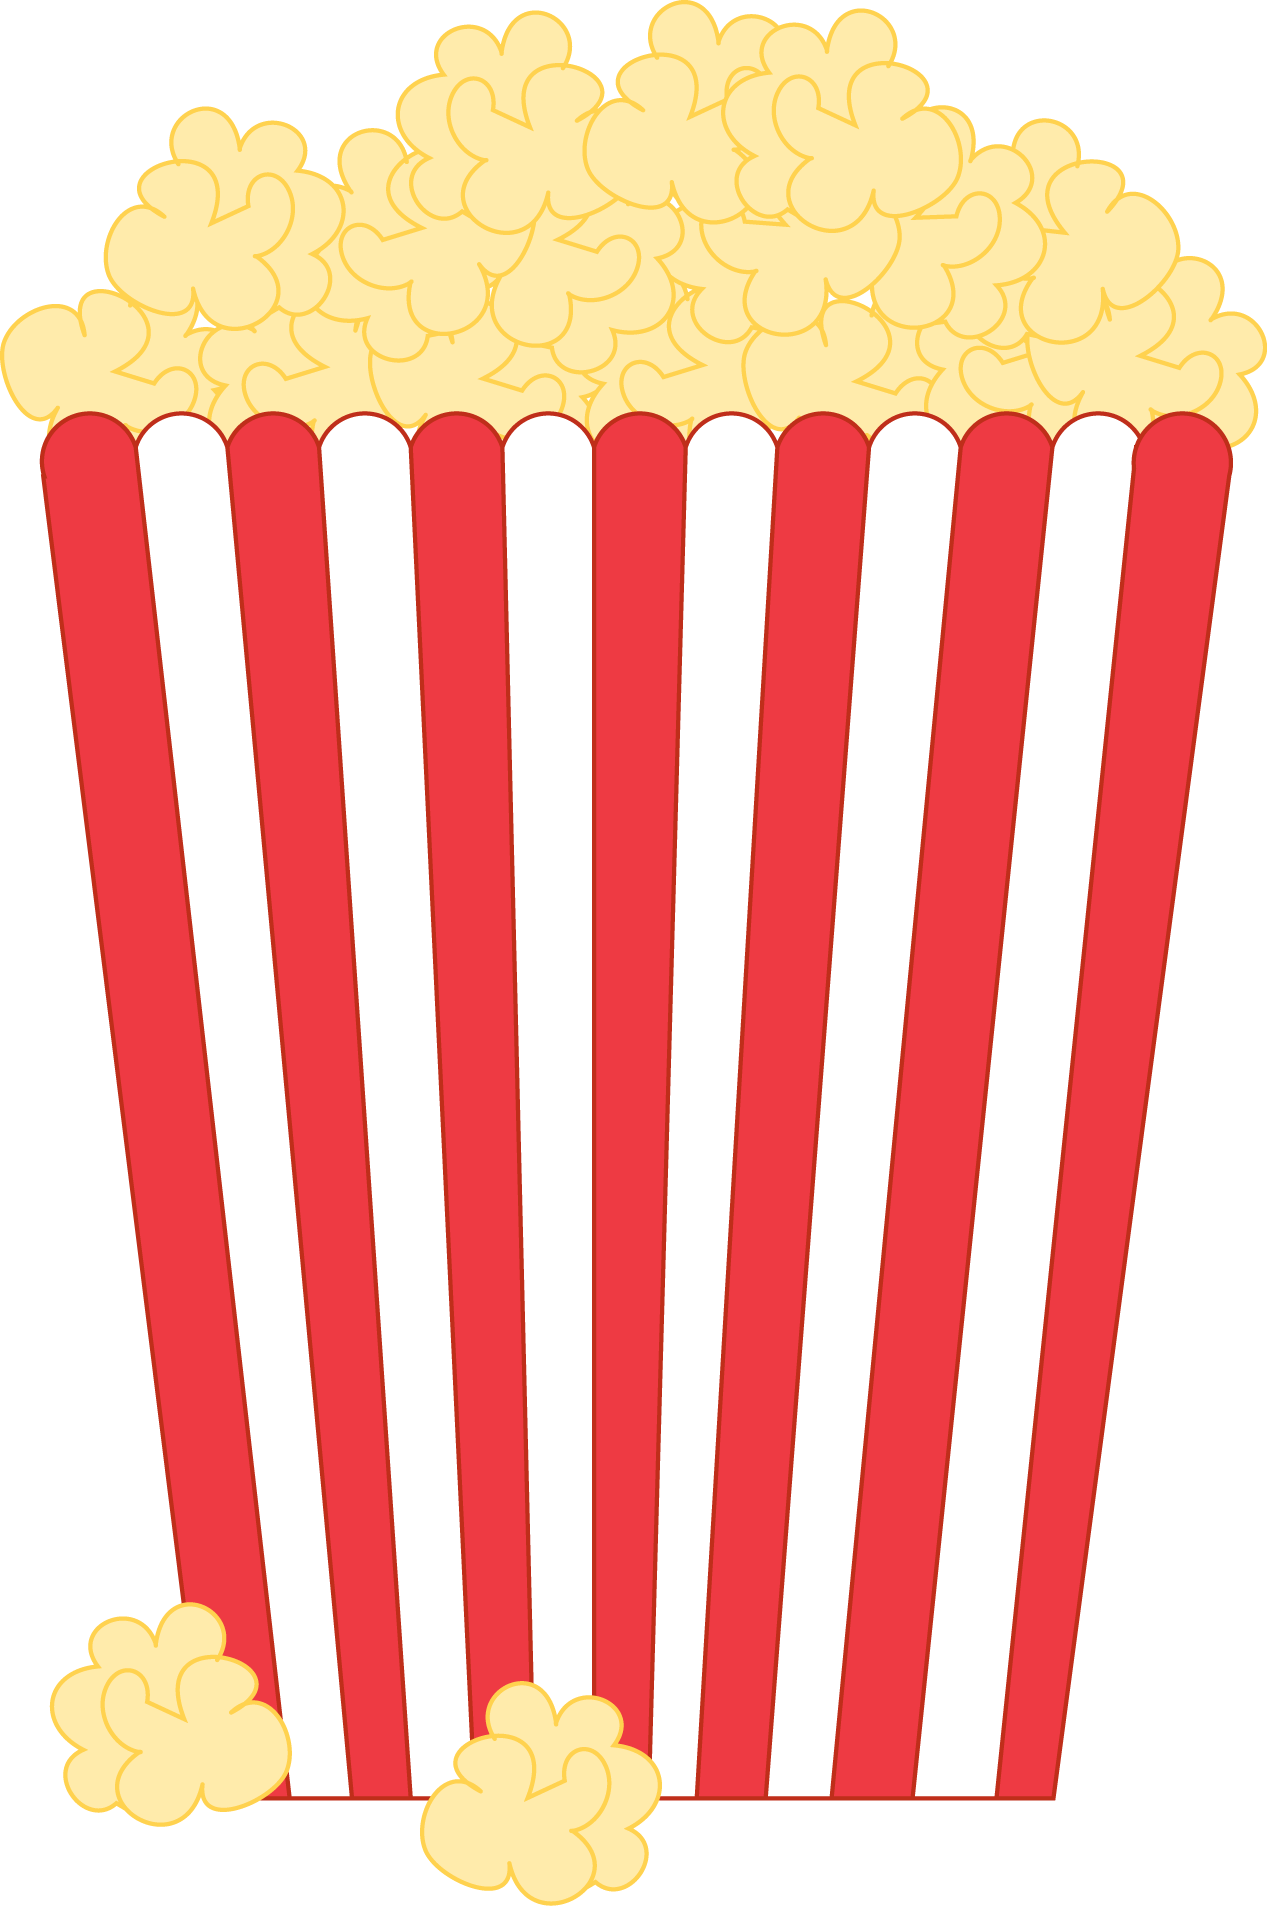 Popcorn images clipart graphic royalty free Free Popcorn Clipart & Look At Clip Art Images - ClipartLook graphic royalty free